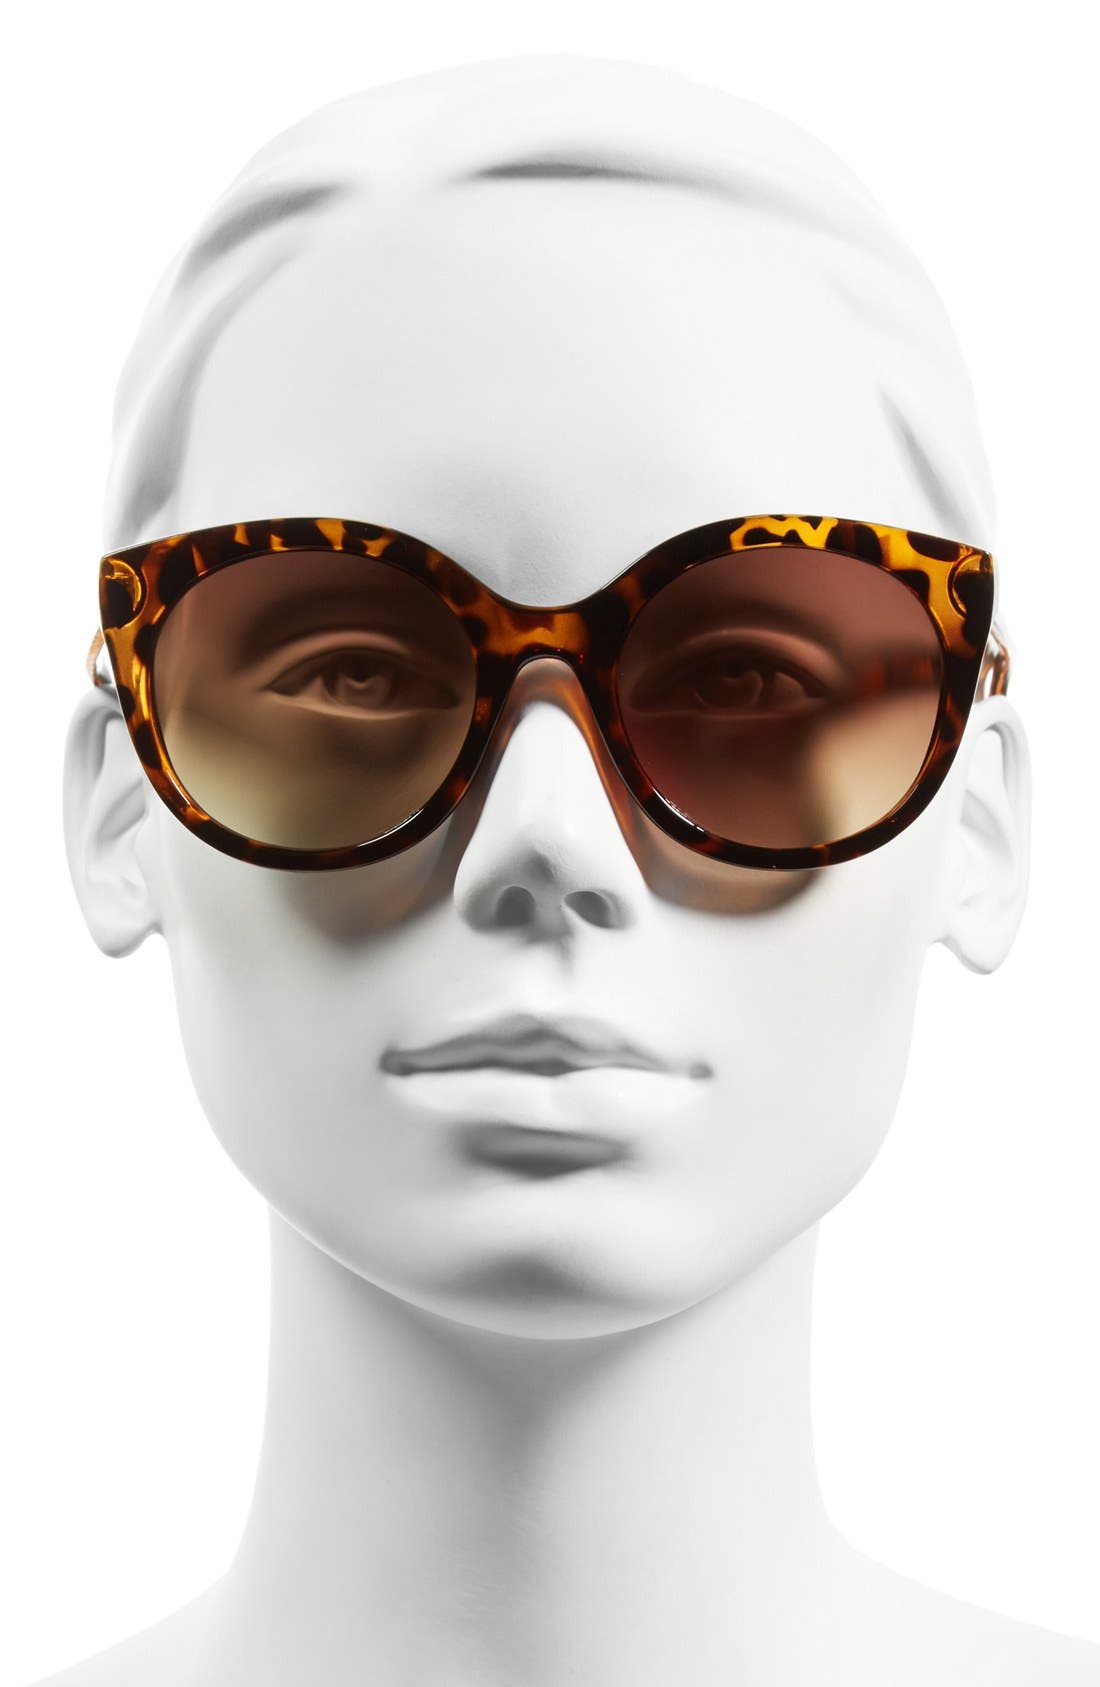 60mm Retro Sunglasses,                             Alternate thumbnail 2, color,                             Tort